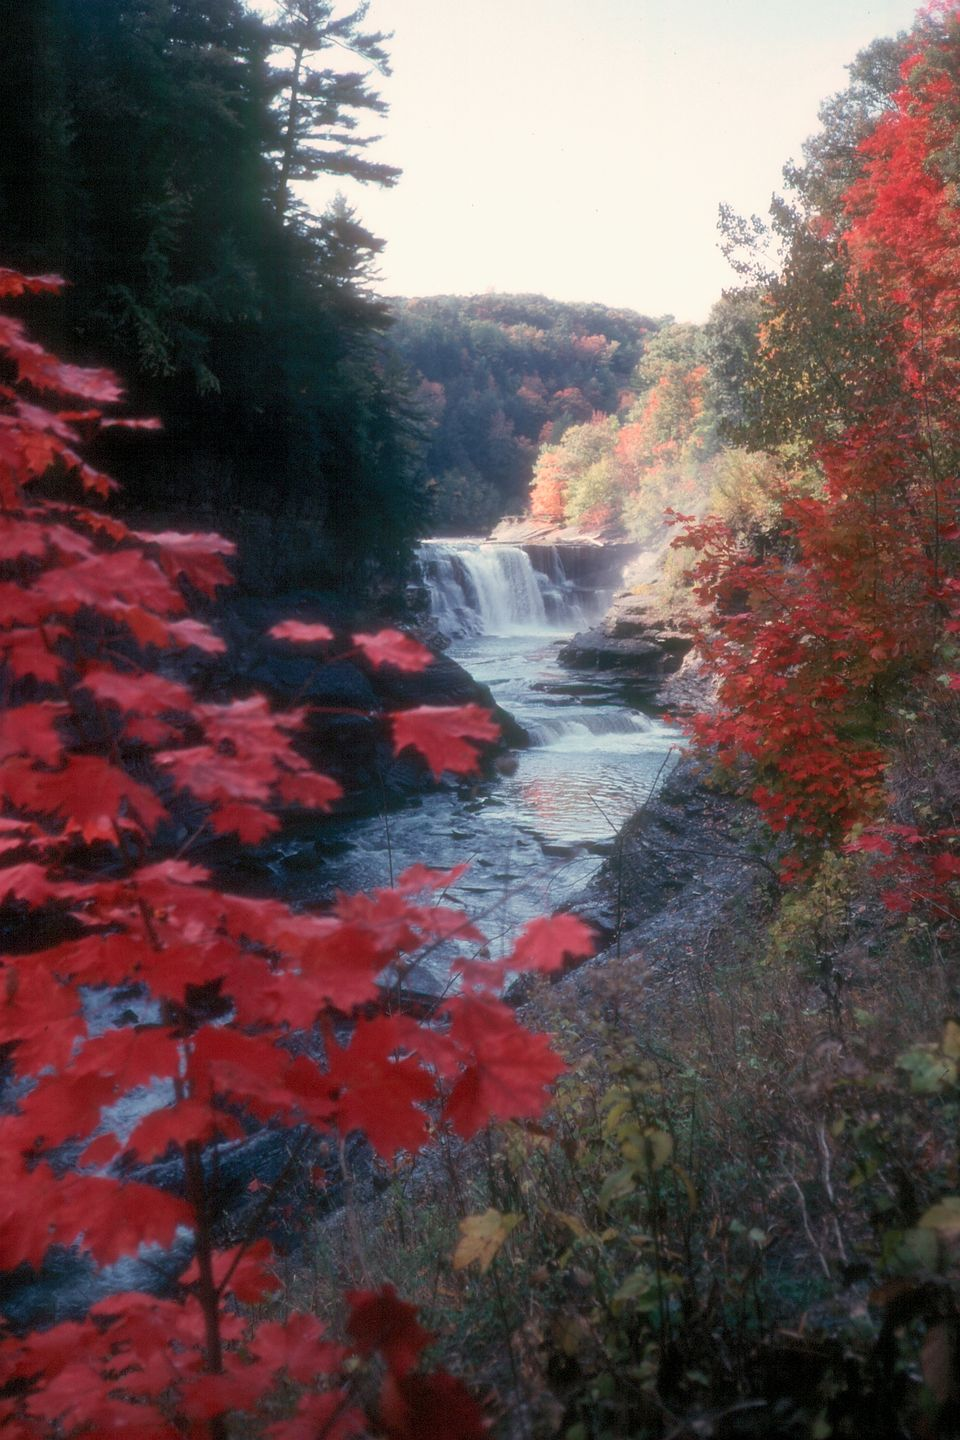 Letchworth falls and leaves